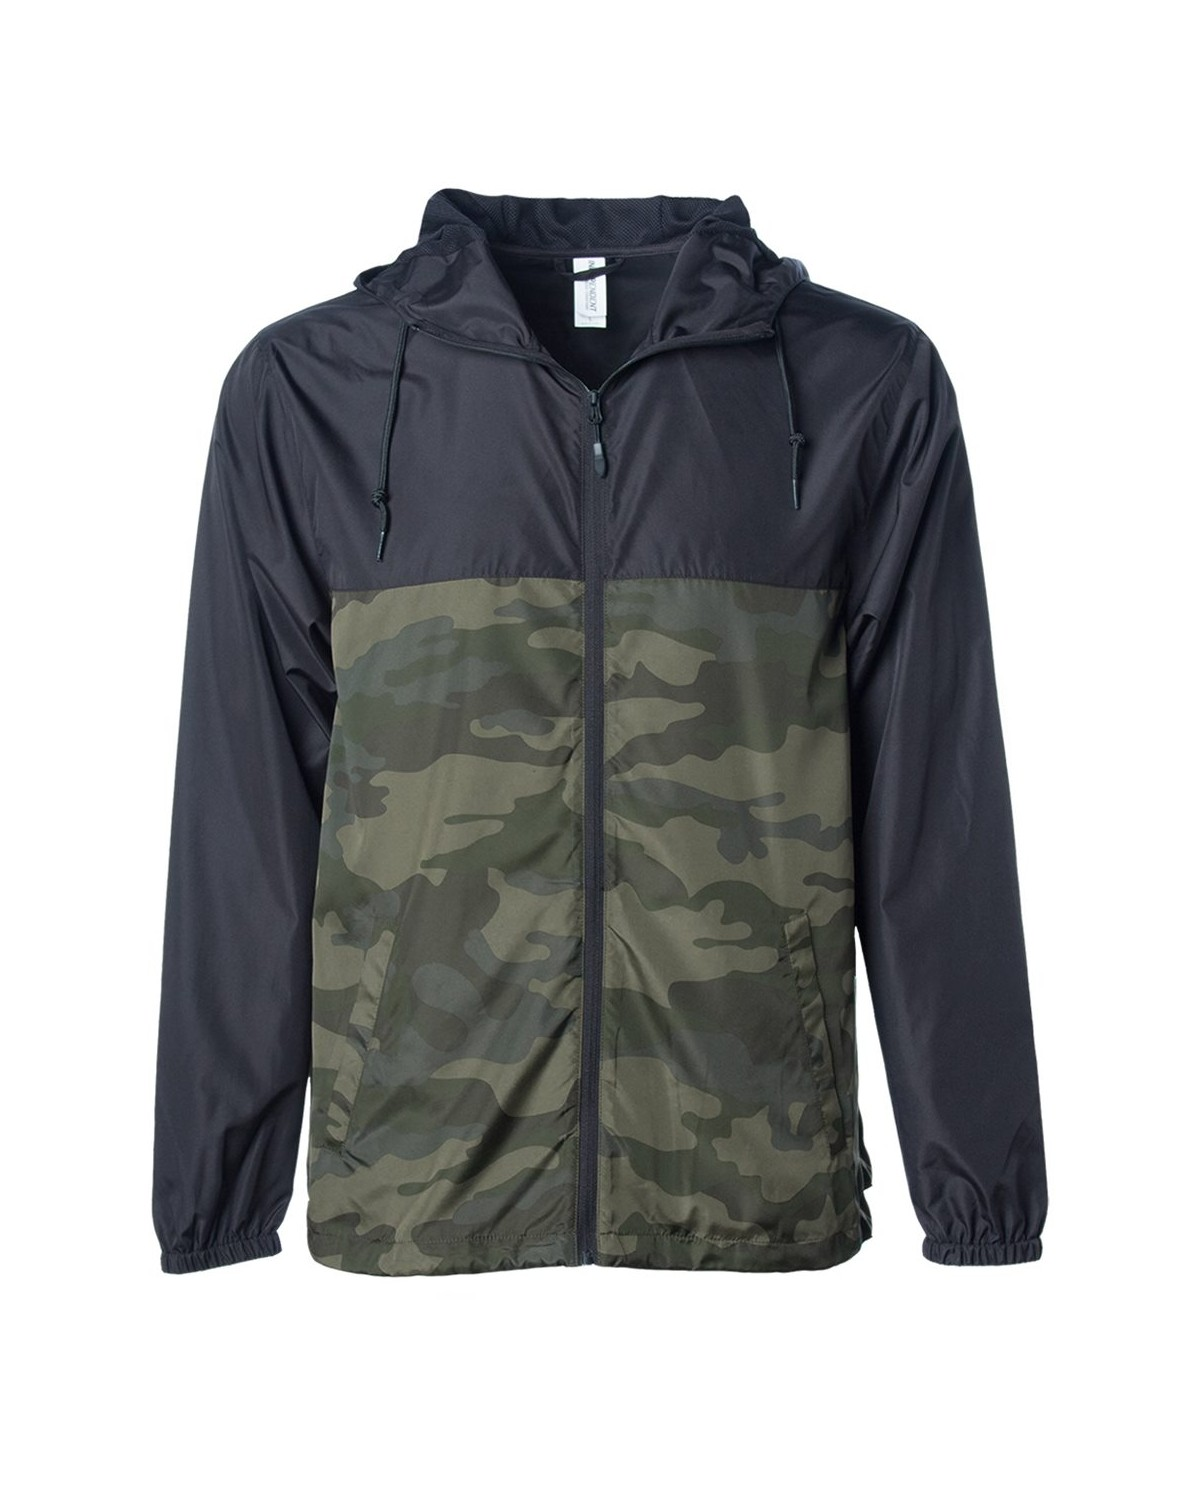 EXP54LWZ Independent Trading Company Black/ Forest Camo